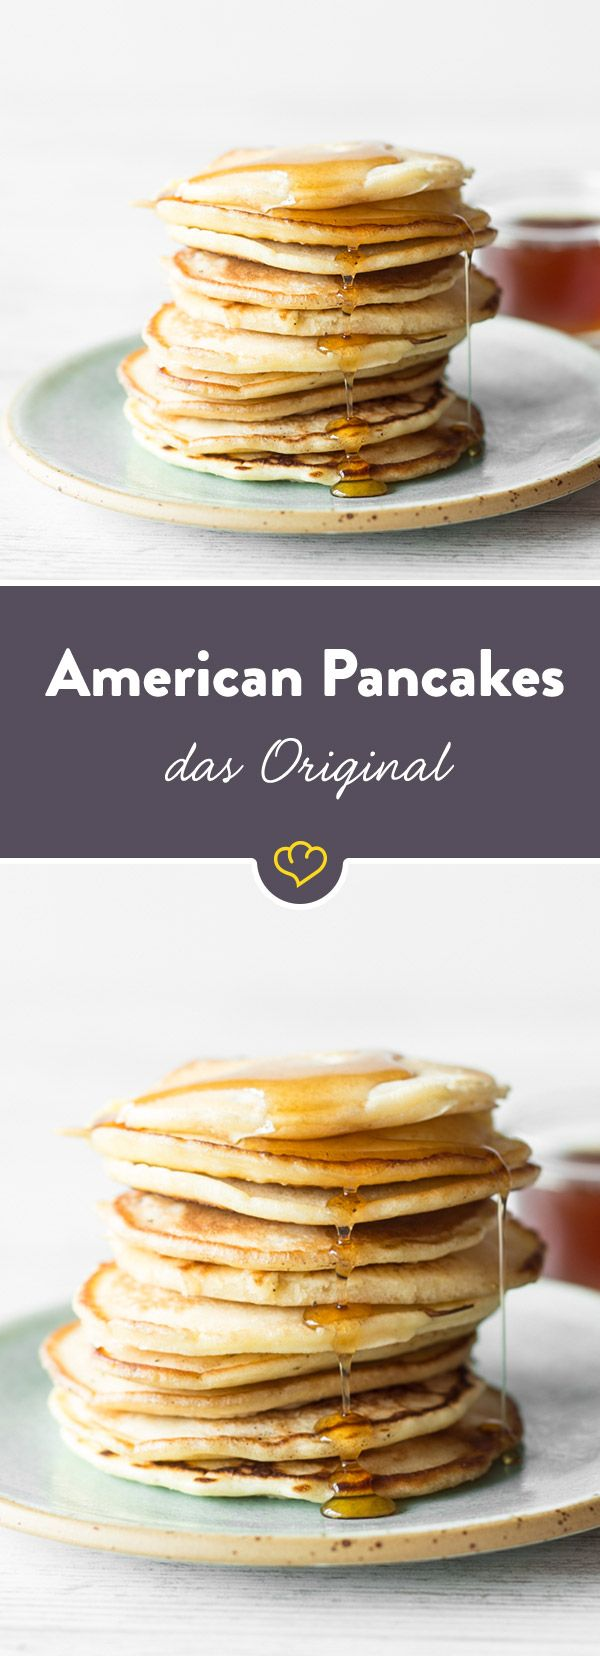 Photo of Panqueques americanos